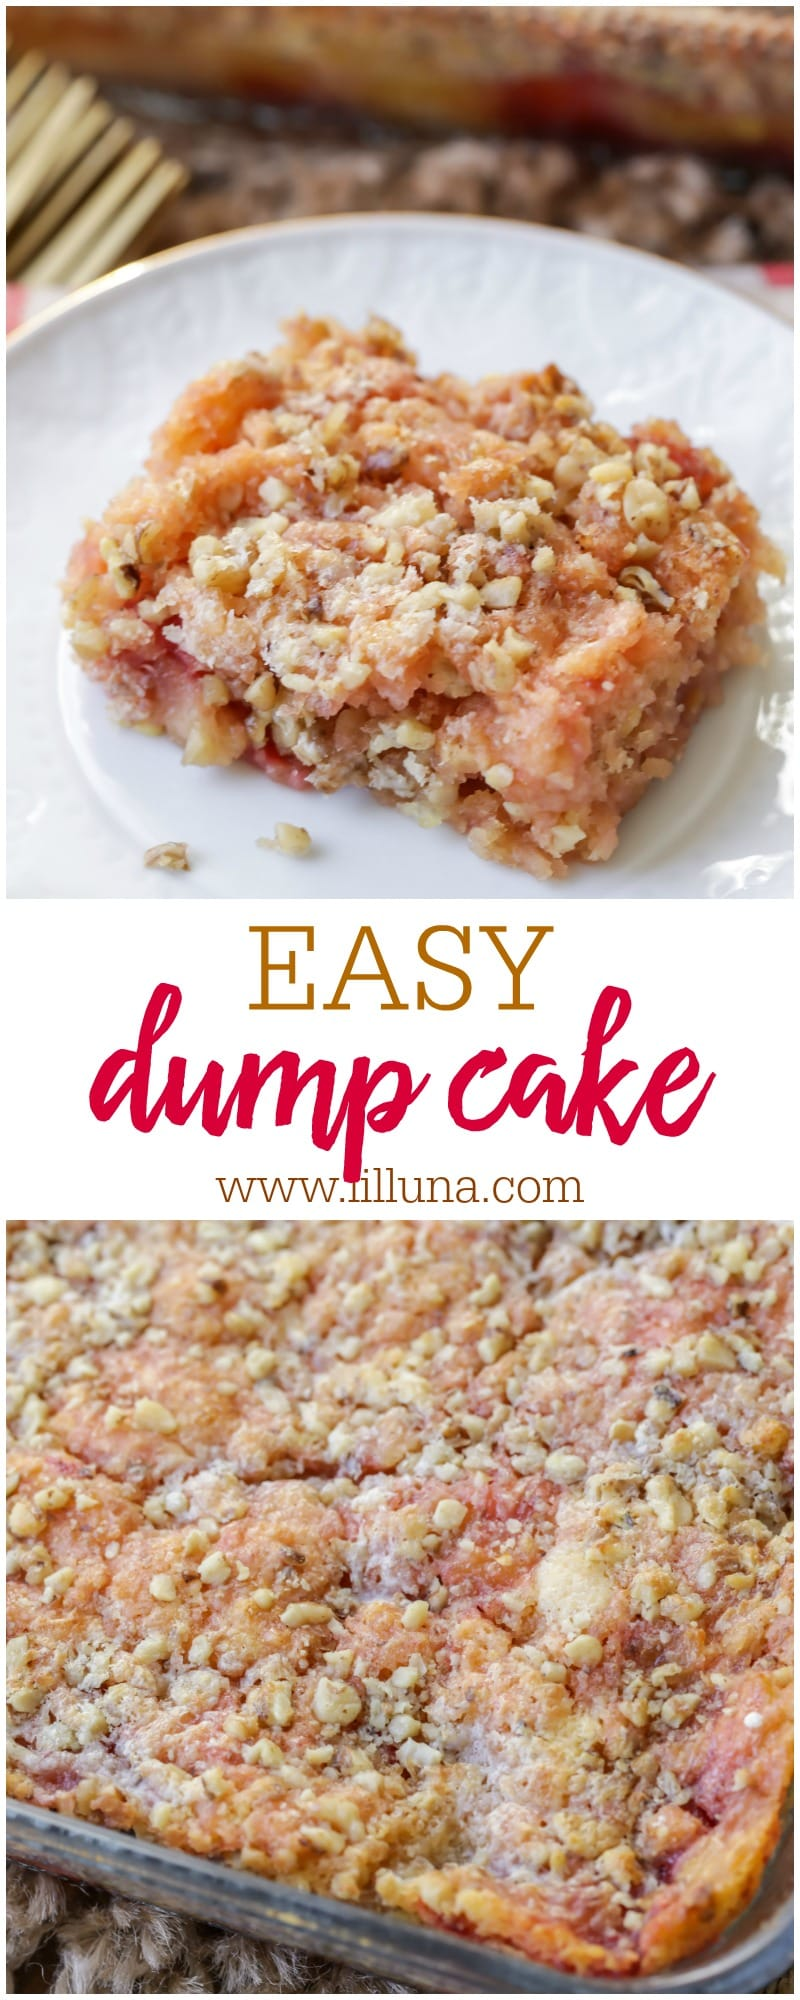 Everyone loves a good Dump Cake recipe! This one is filled with cherry pie filling, crushed pineapples and is topped with cake mix, walnuts and butter!